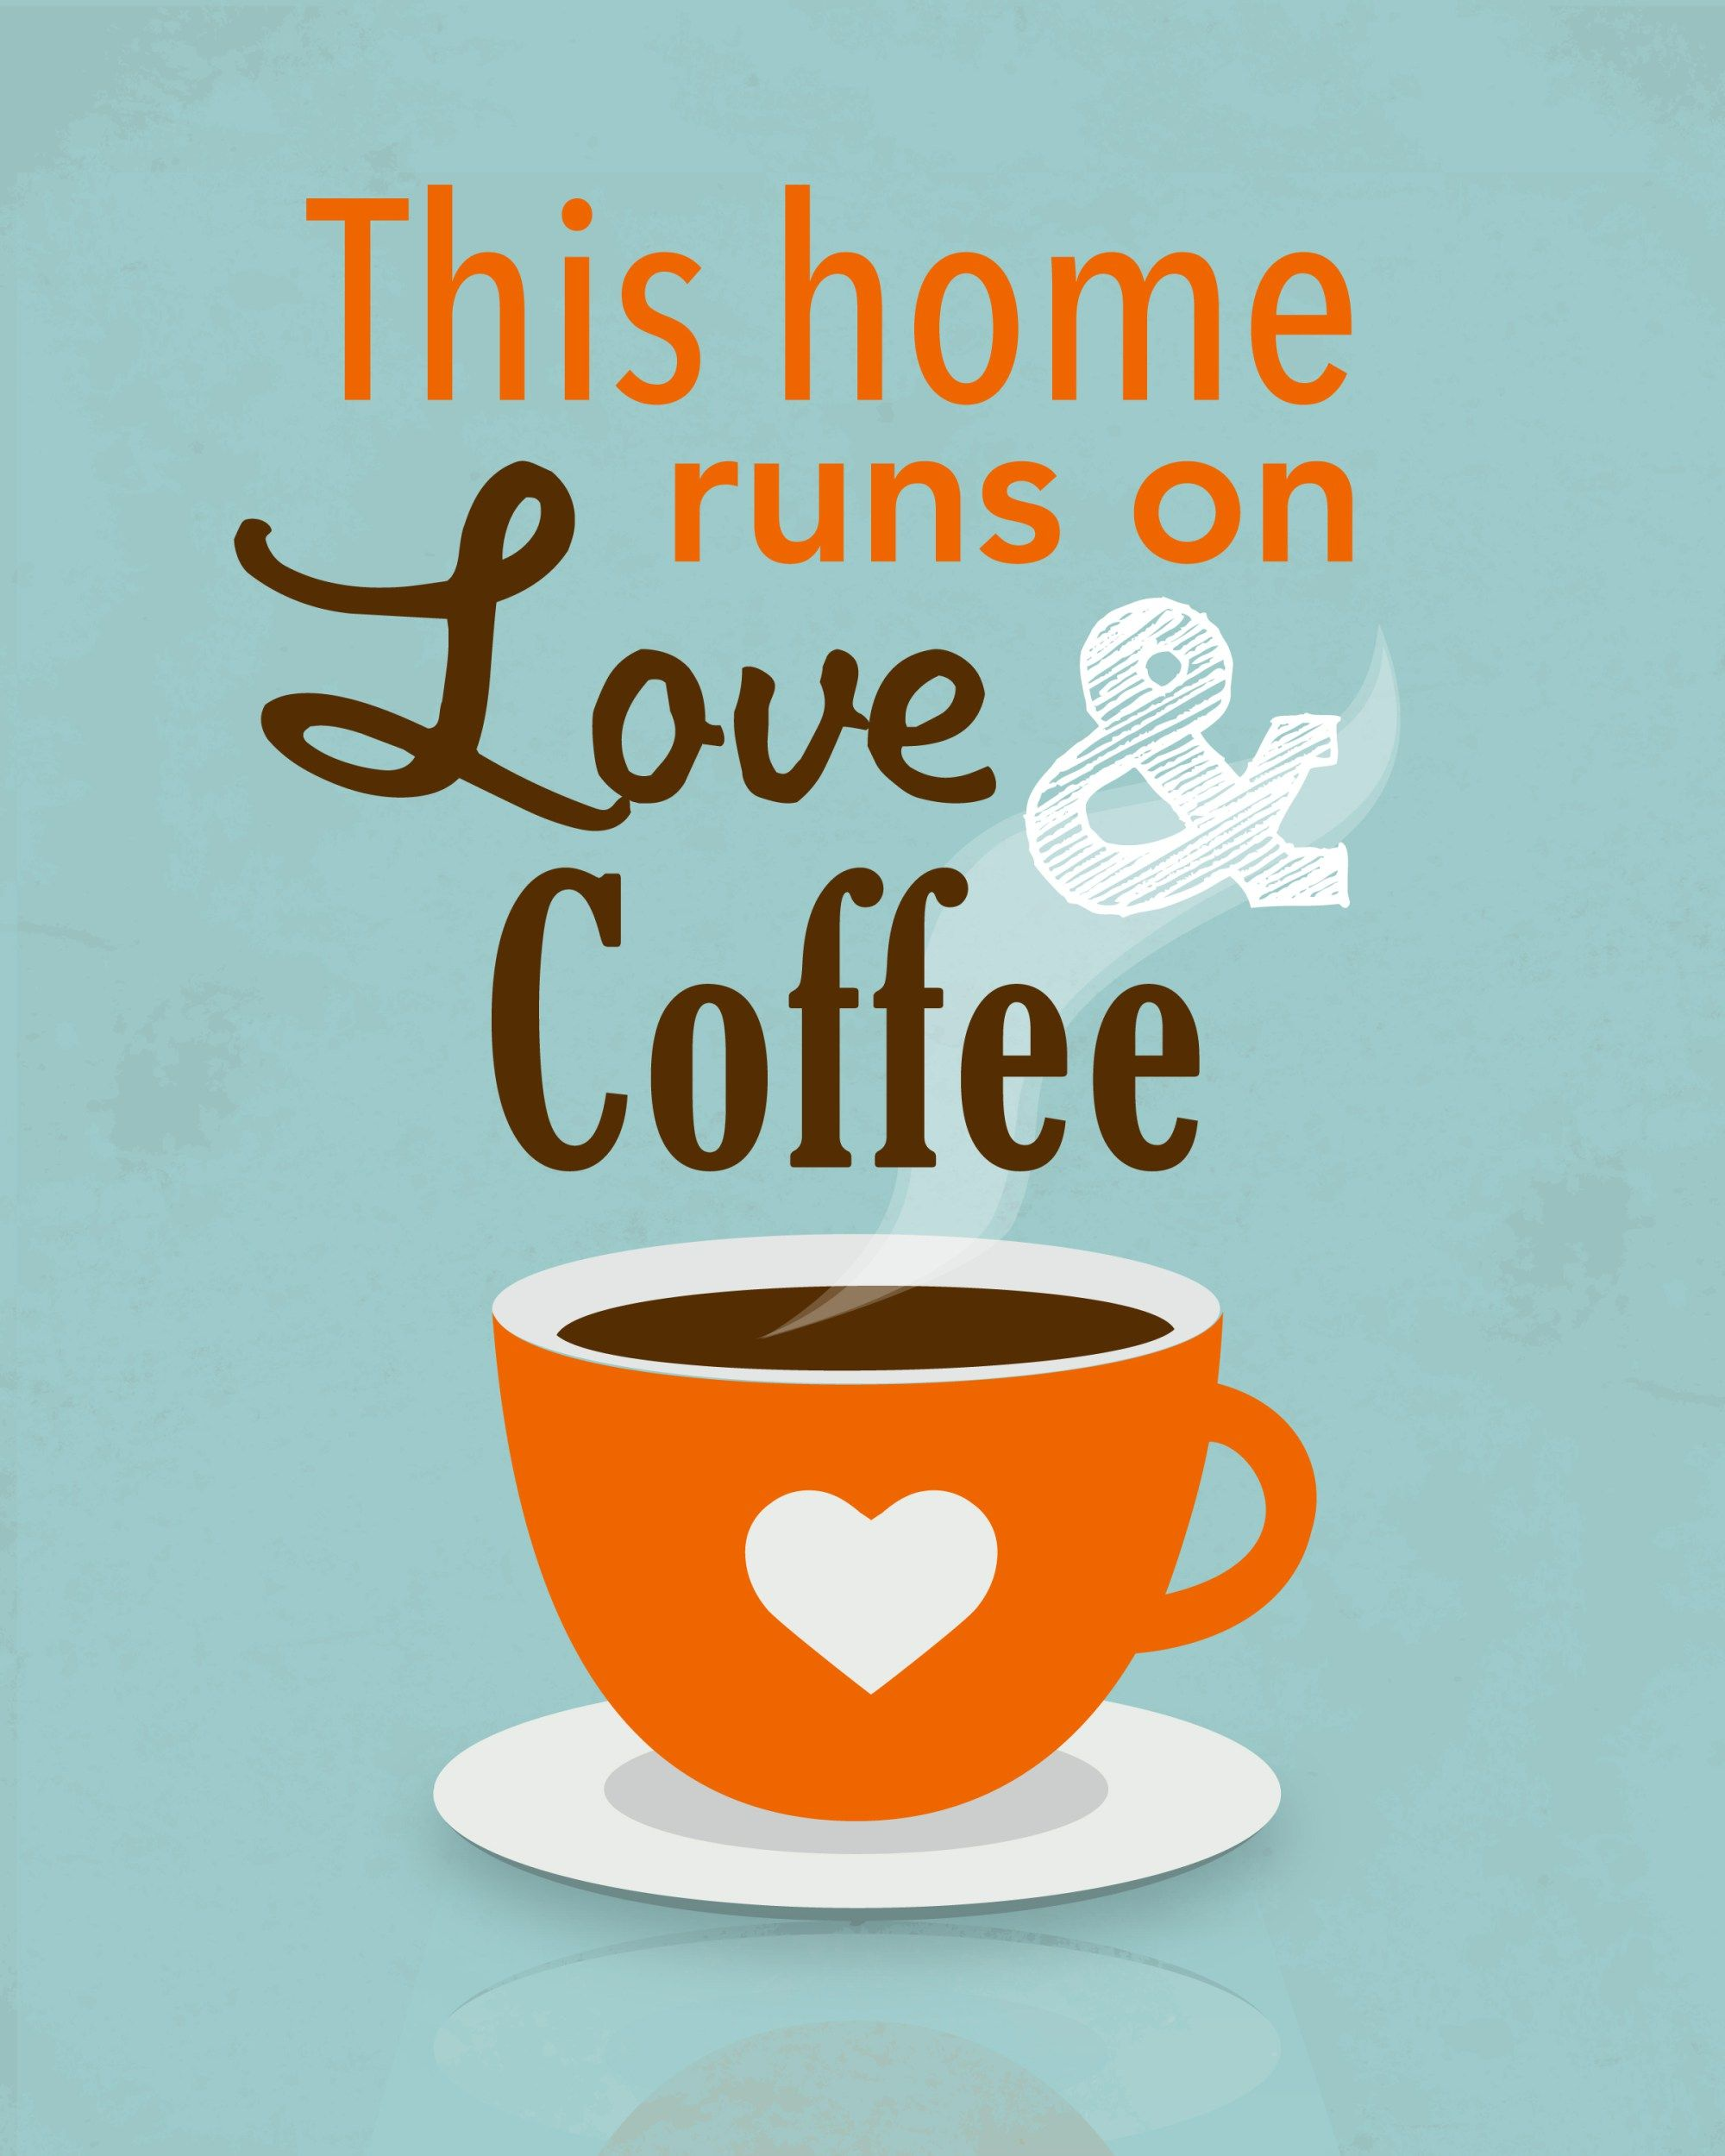 Free Coffee Printable With The Inspirational Coffee Quote This Home Runs On Love And Coffee That Could Not Be Coffee Love Coffee Printables Coffee Quotes